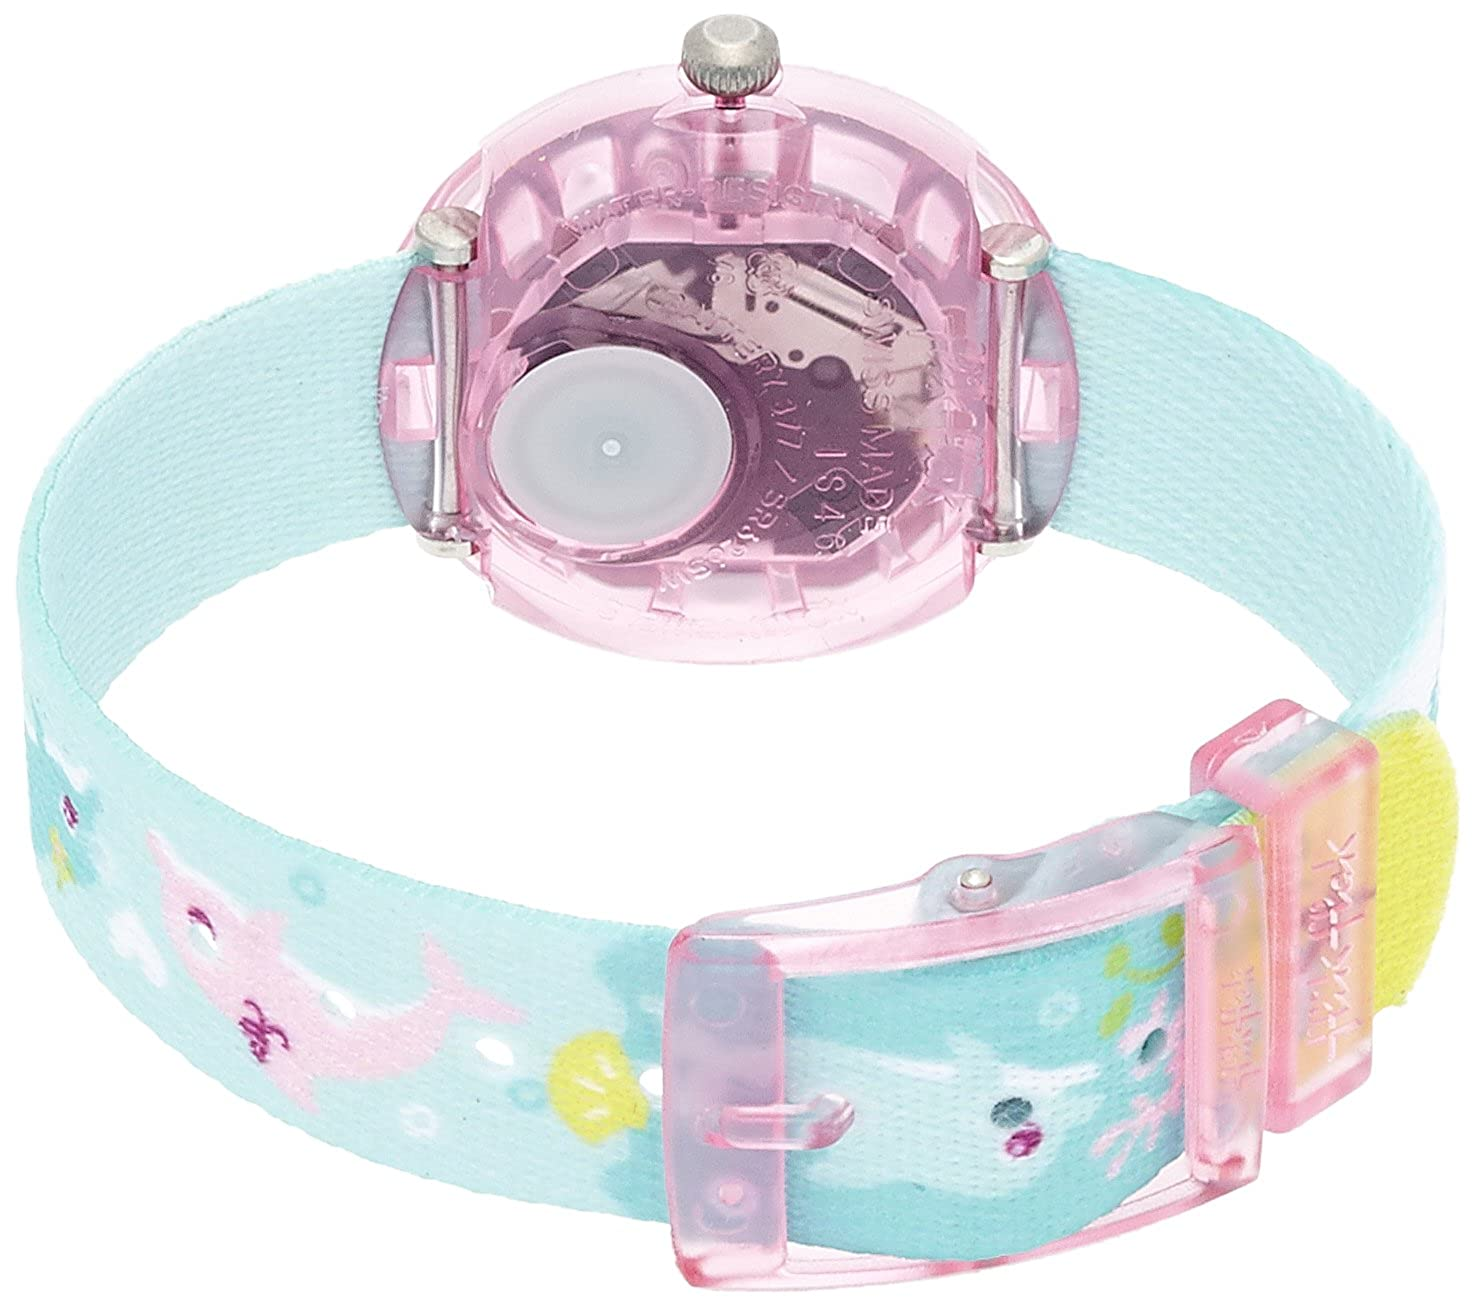 Amazon.com: Flik Flak FBNP035 Girls Splashy Dolphins Multicolour Watch: Watches